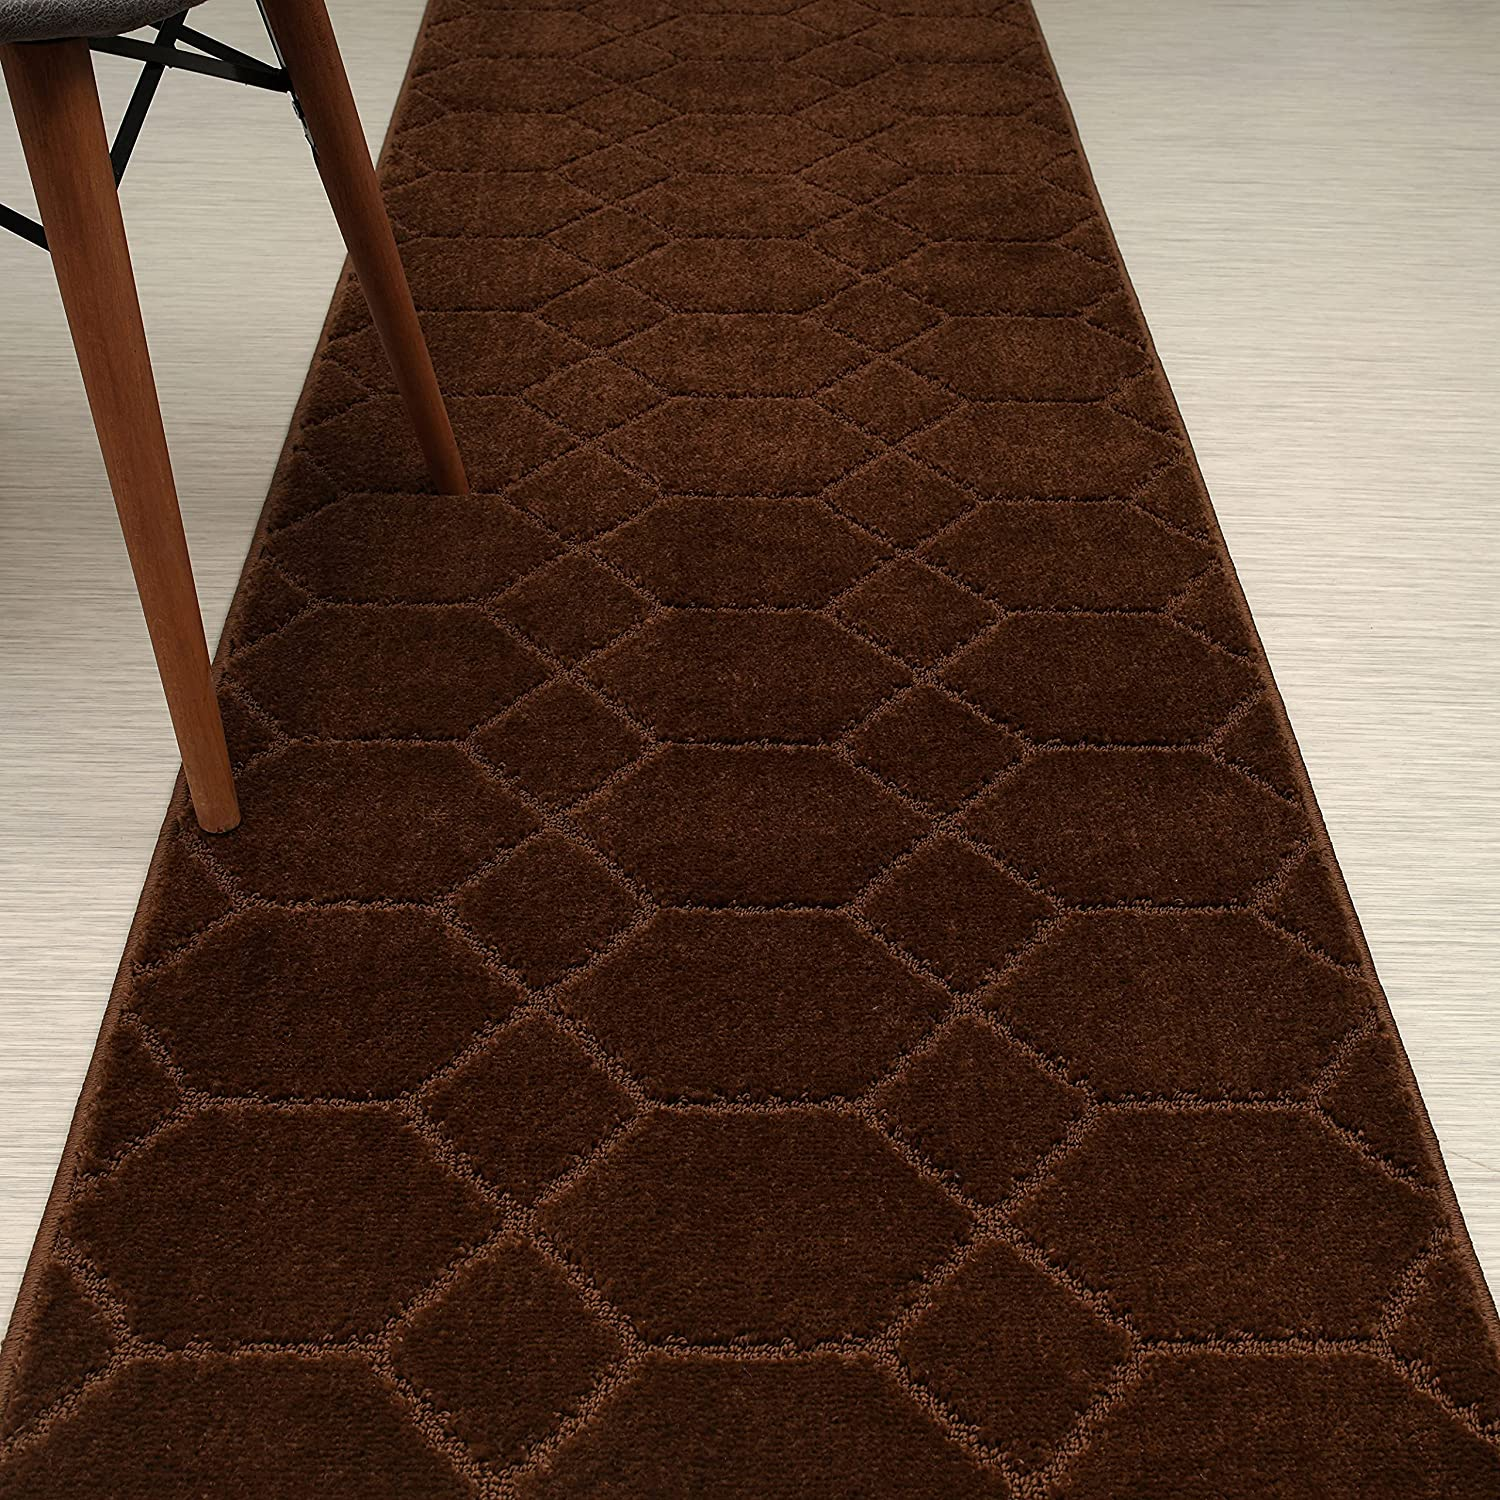 Custom Length Don't miss the campaign Hallway Direct stock discount Carpet Runner 26 Resistant Inch Slip Rug